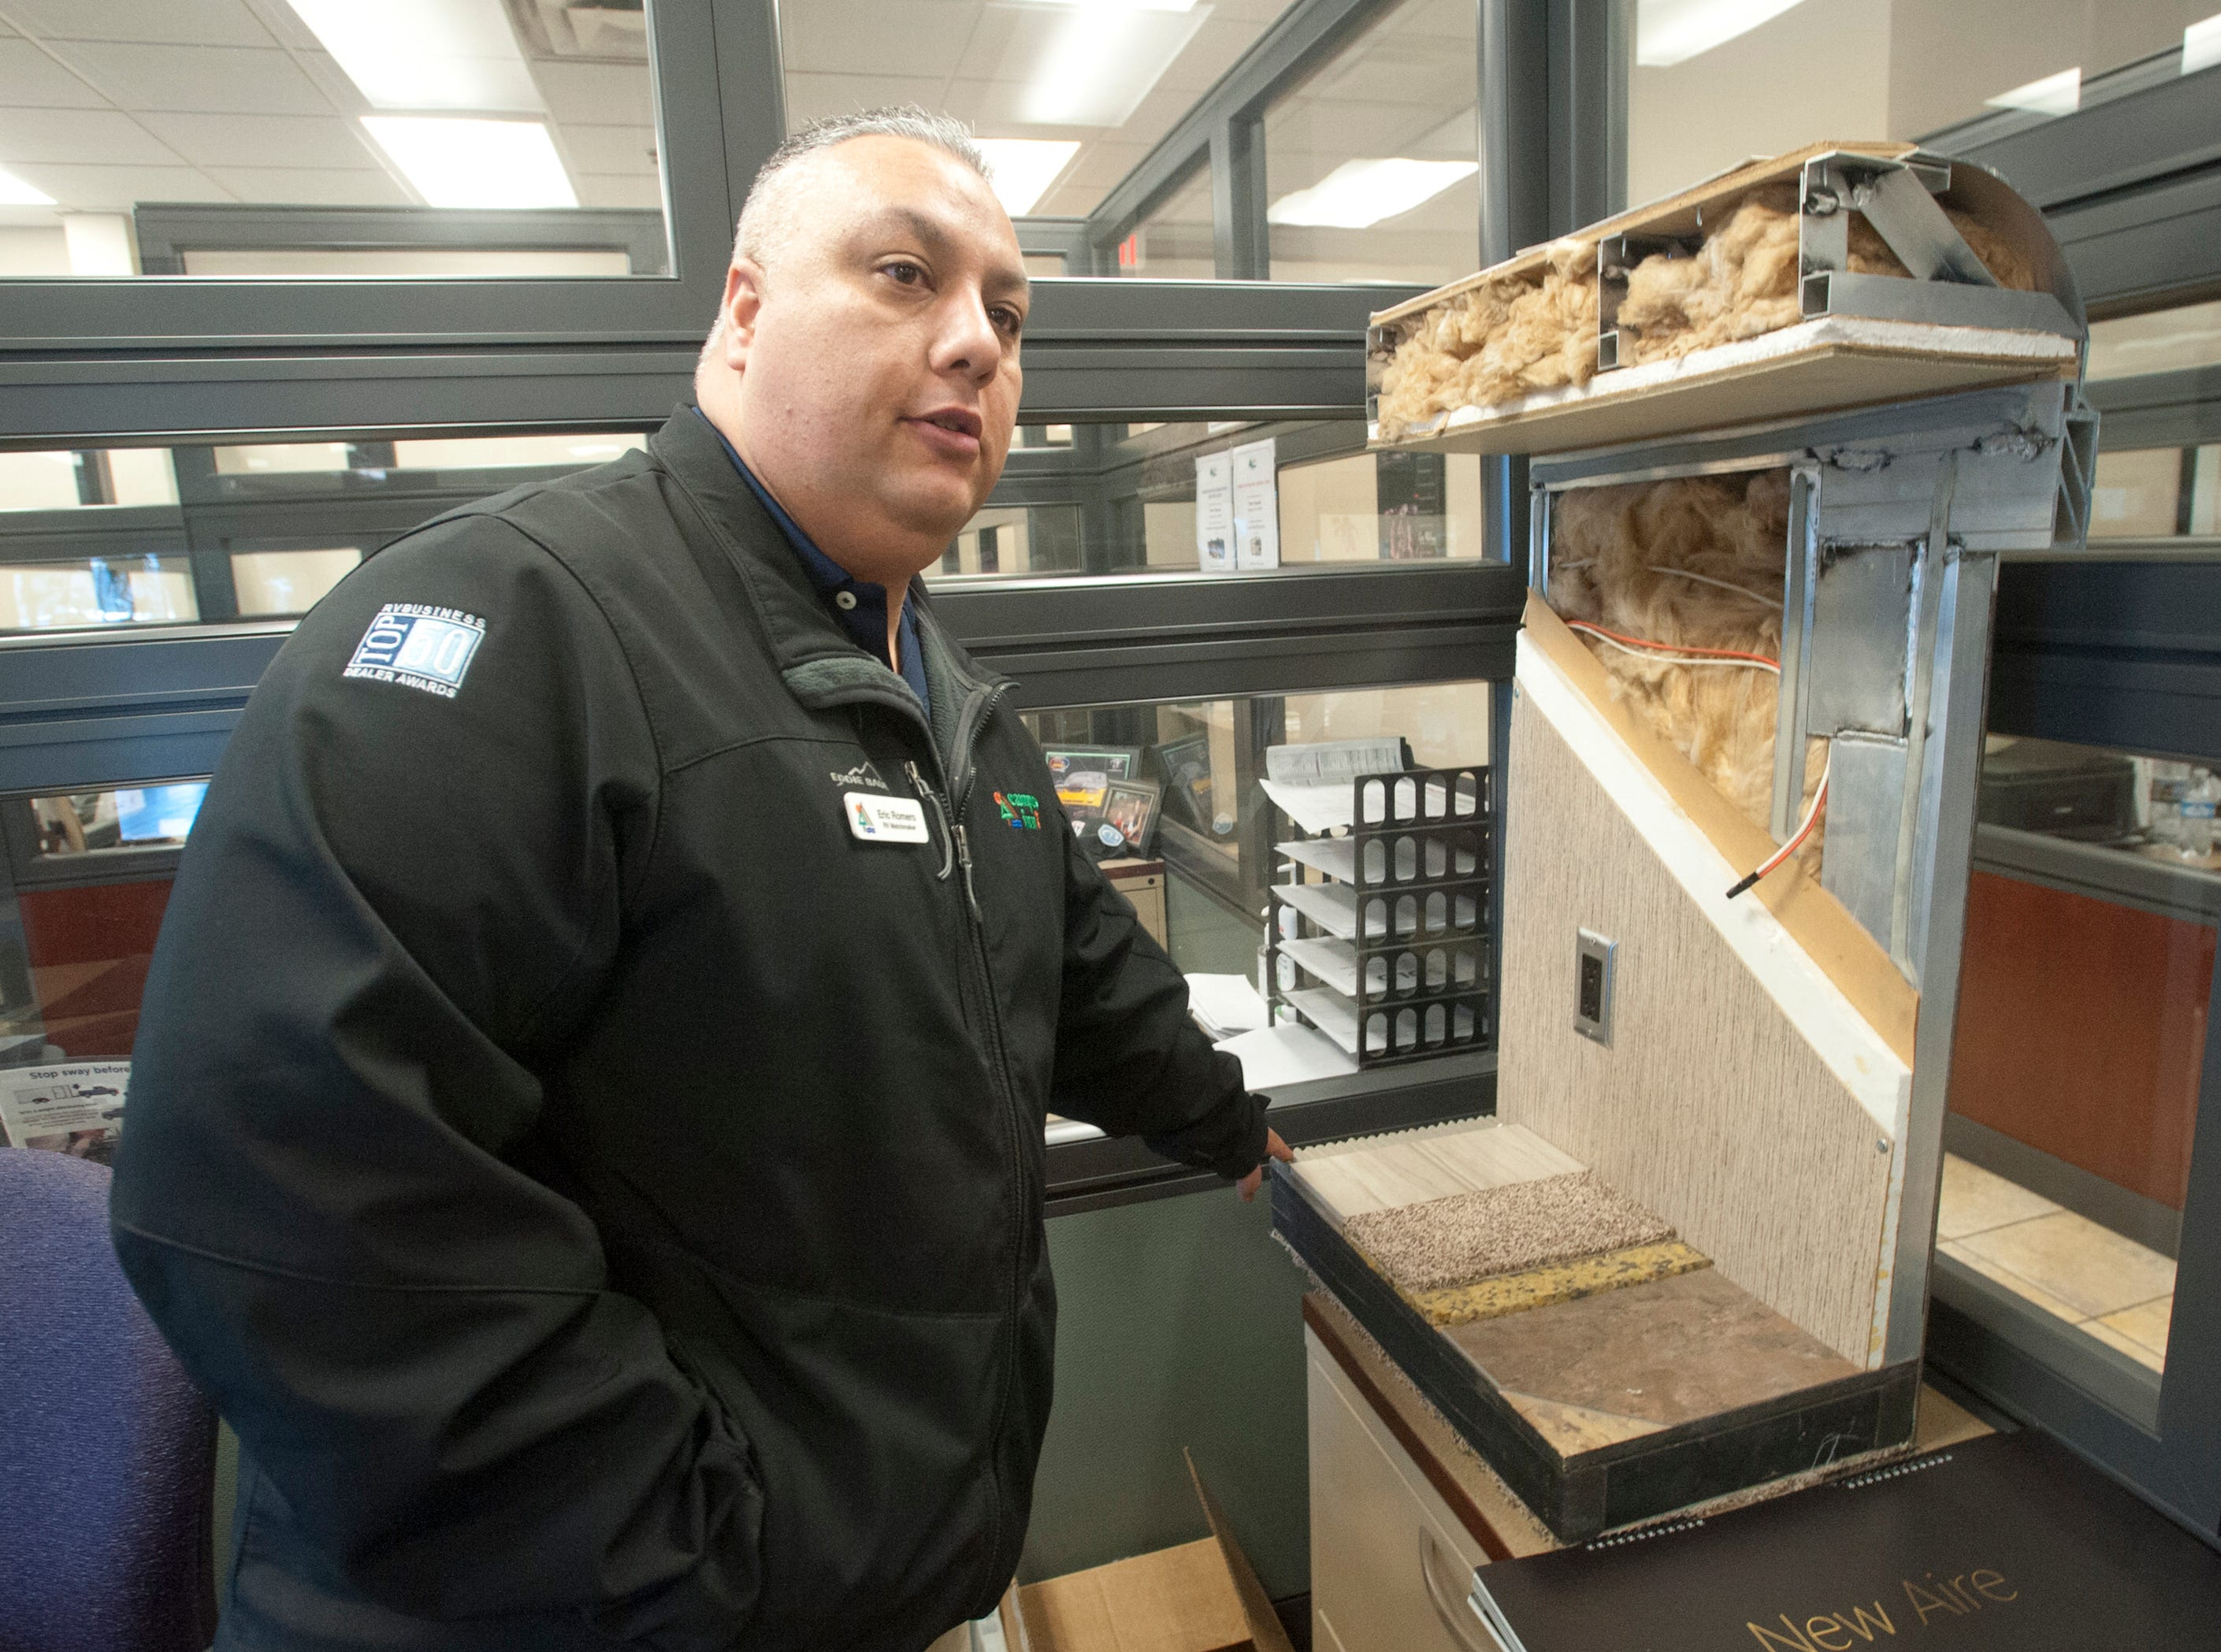 Eric Romero, sales representative for Campers Inn in Clarksville, shows a model of the under skin of the recreational vehicle including heated flooring options and the fiberglass that is used to insulate the vehicle.11 December 2018